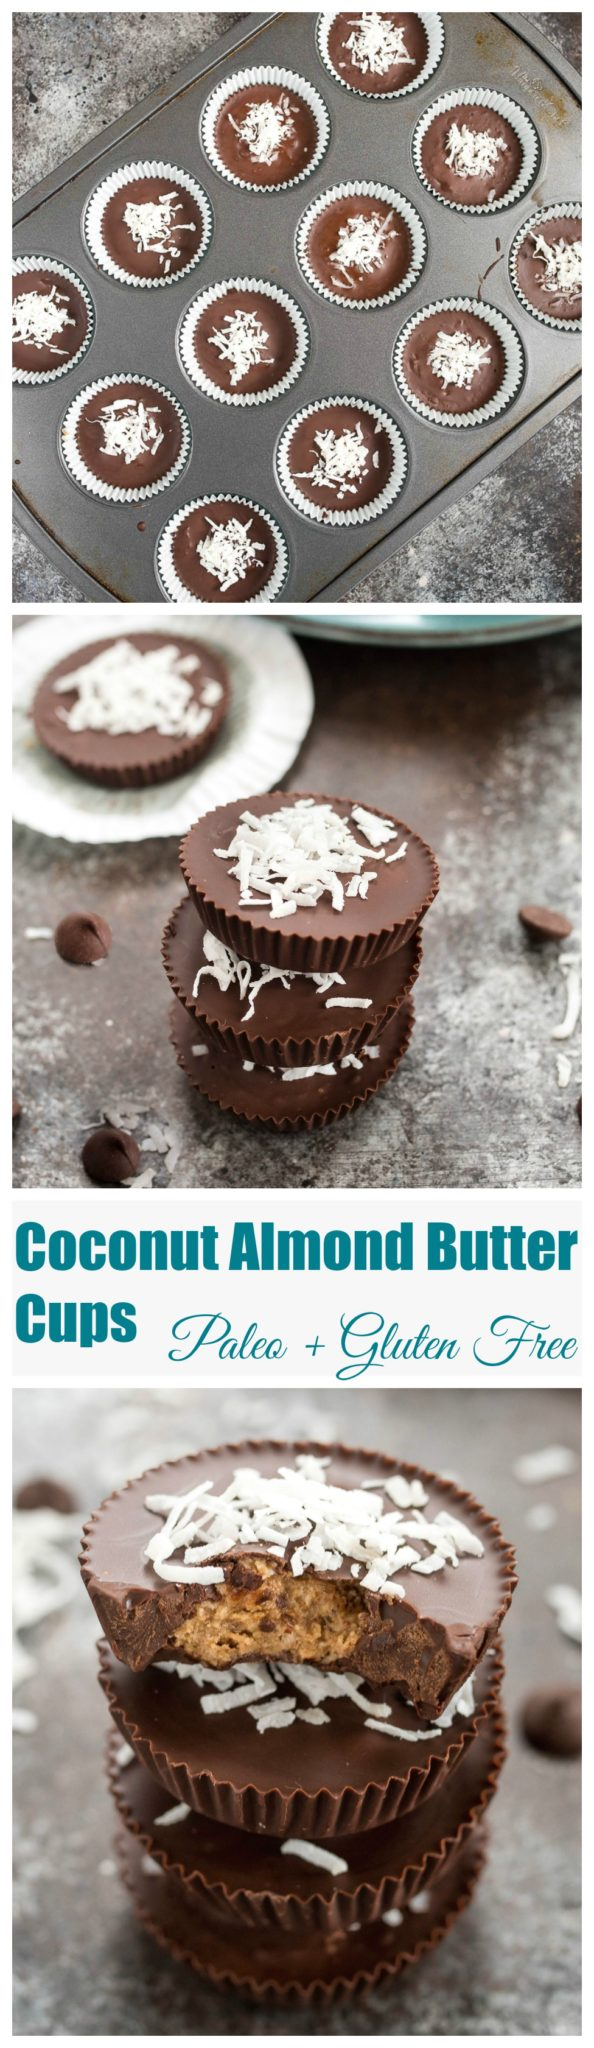 Coconut Almond Butter Cups- just like homemade peanut butter cups but using almond butter and jazzing it up with a little coconut flavor. So easy and they keep well too! | www.nutritiouseats.com